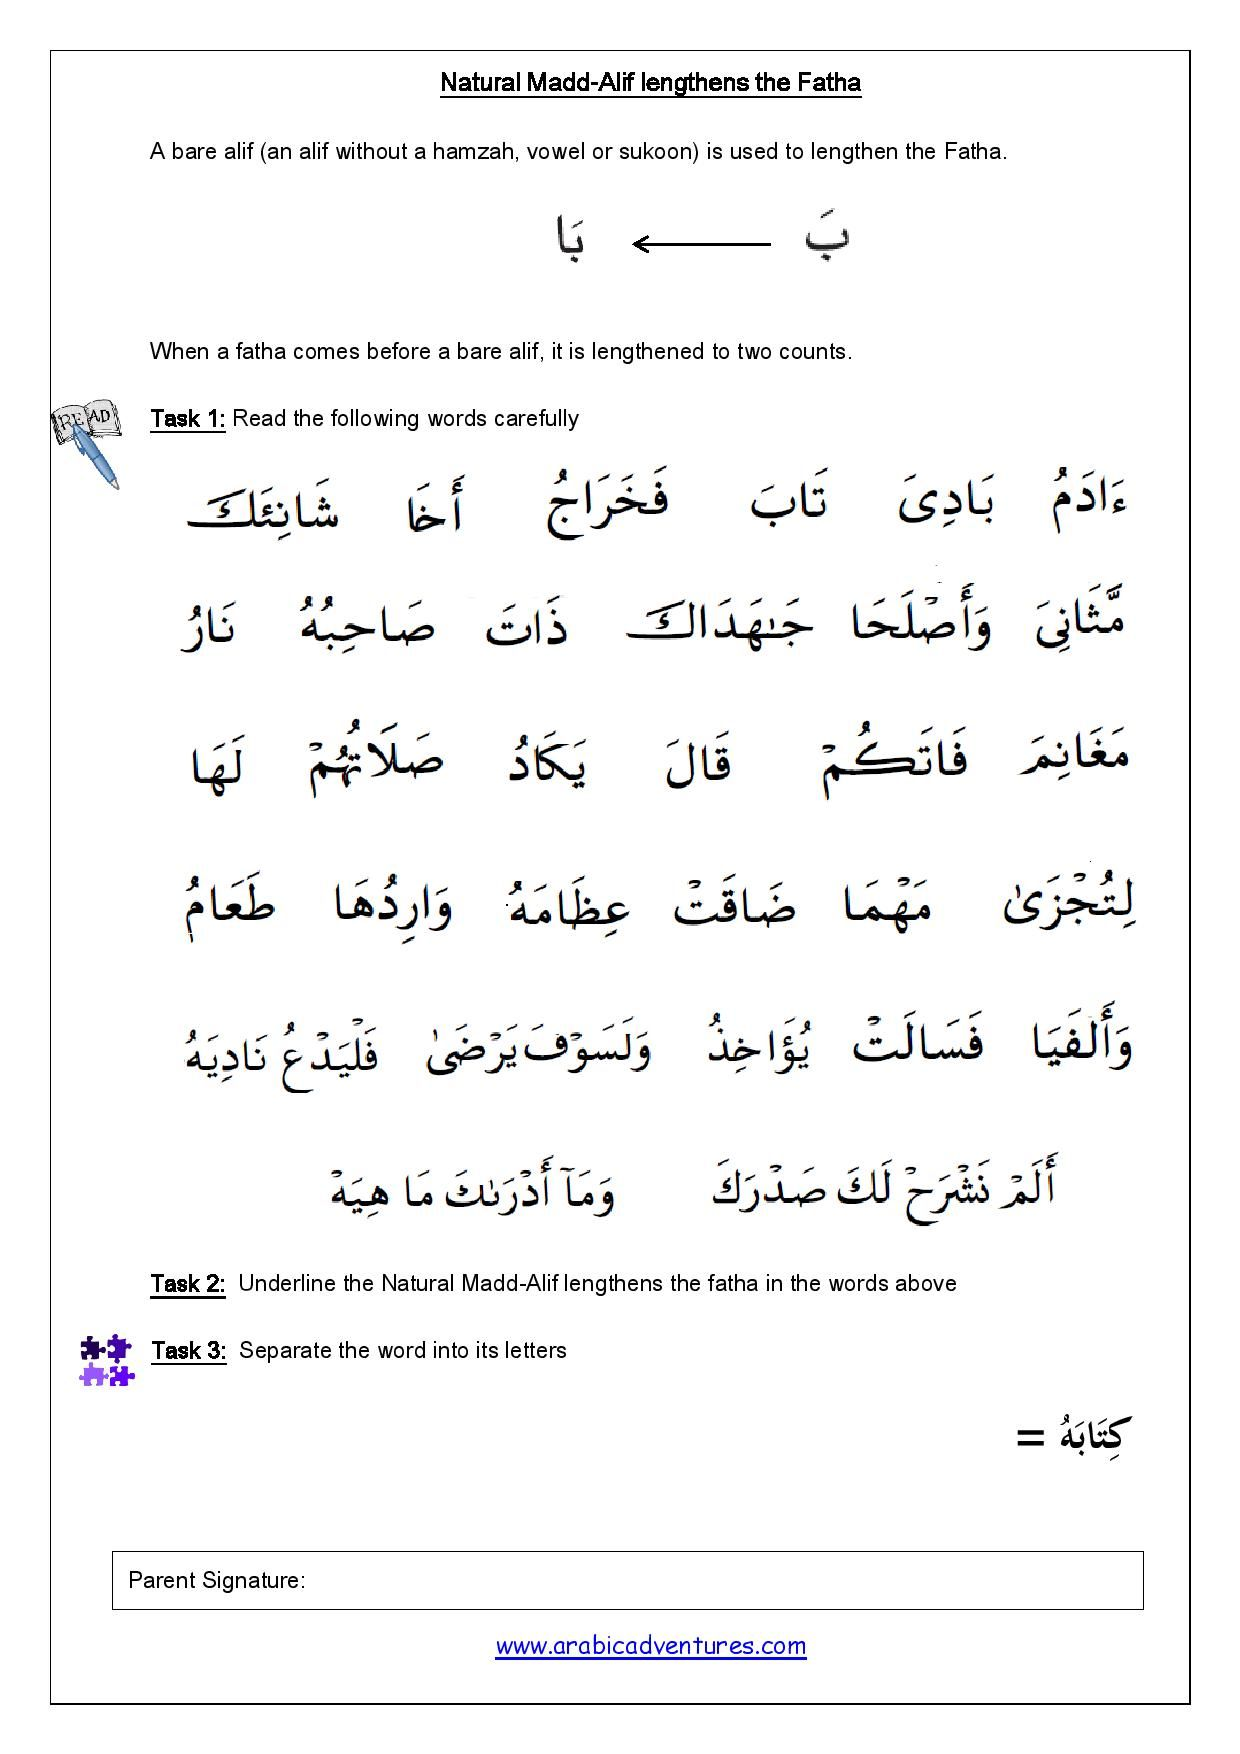 Bismillah The Following Worksheets Were Created By My Sister Also A Teacher For Class 4 7 8 Year Olds Arabic Worksheets Making Words Learn Arabic Online [ 1754 x 1240 Pixel ]